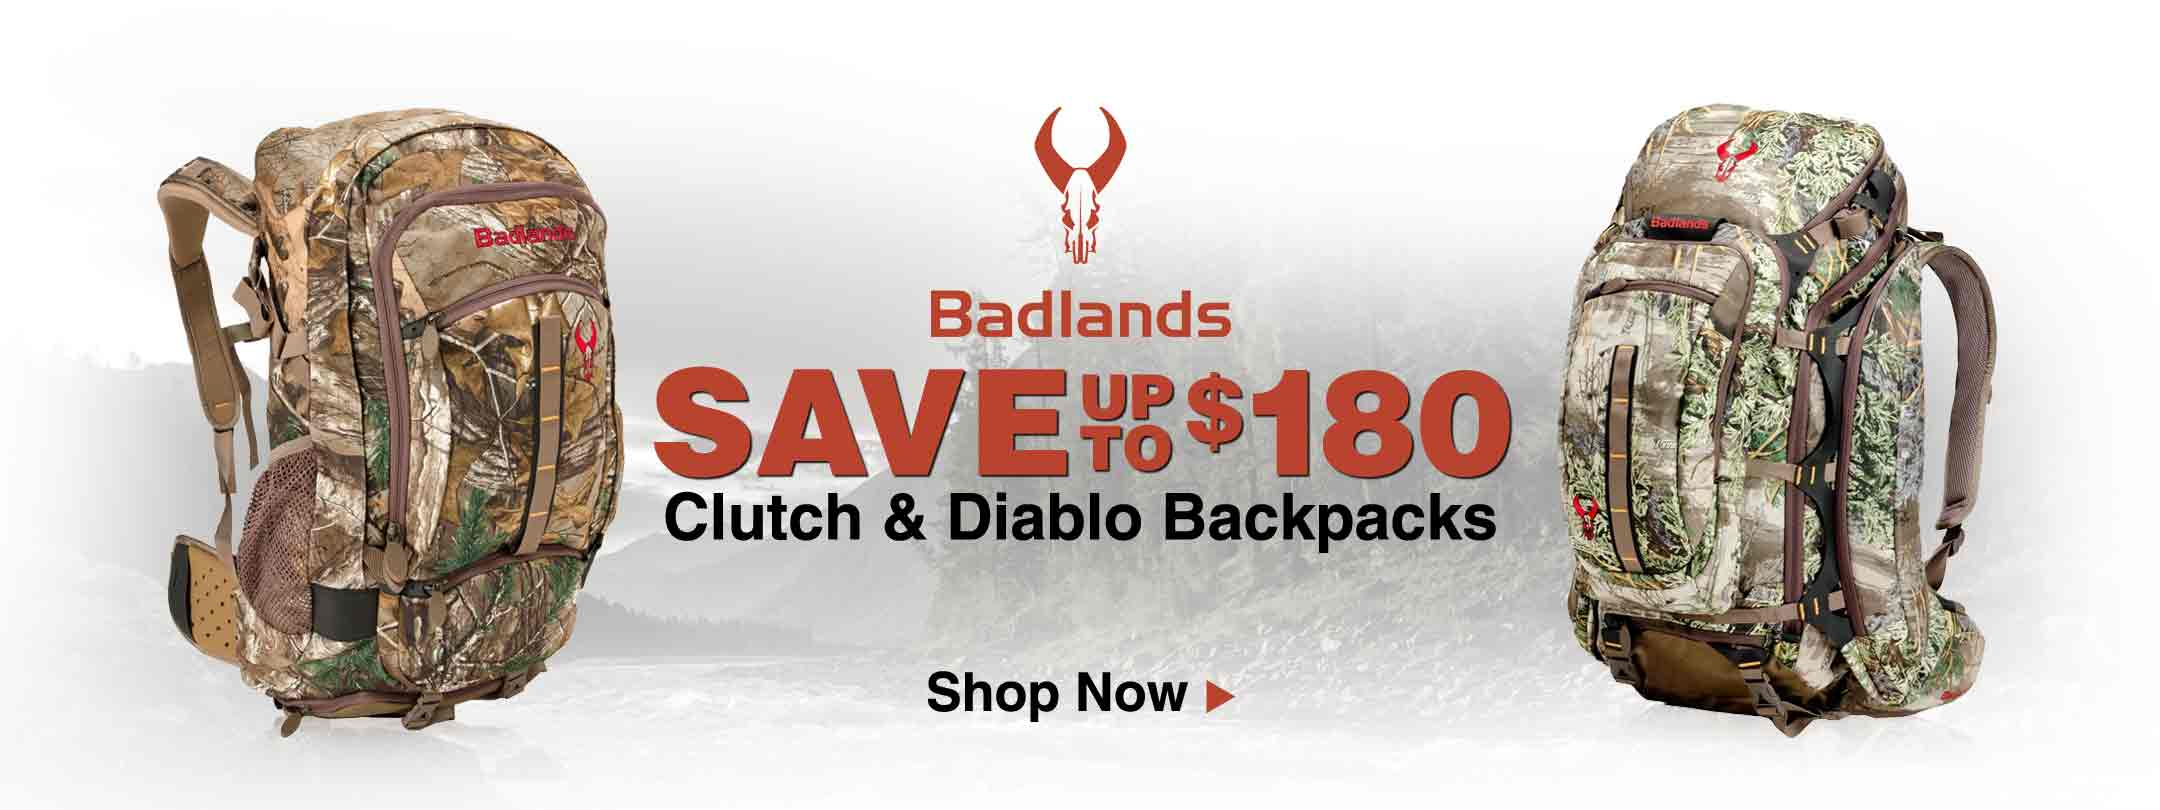 Badlands Clutch & Diablo Backpacks